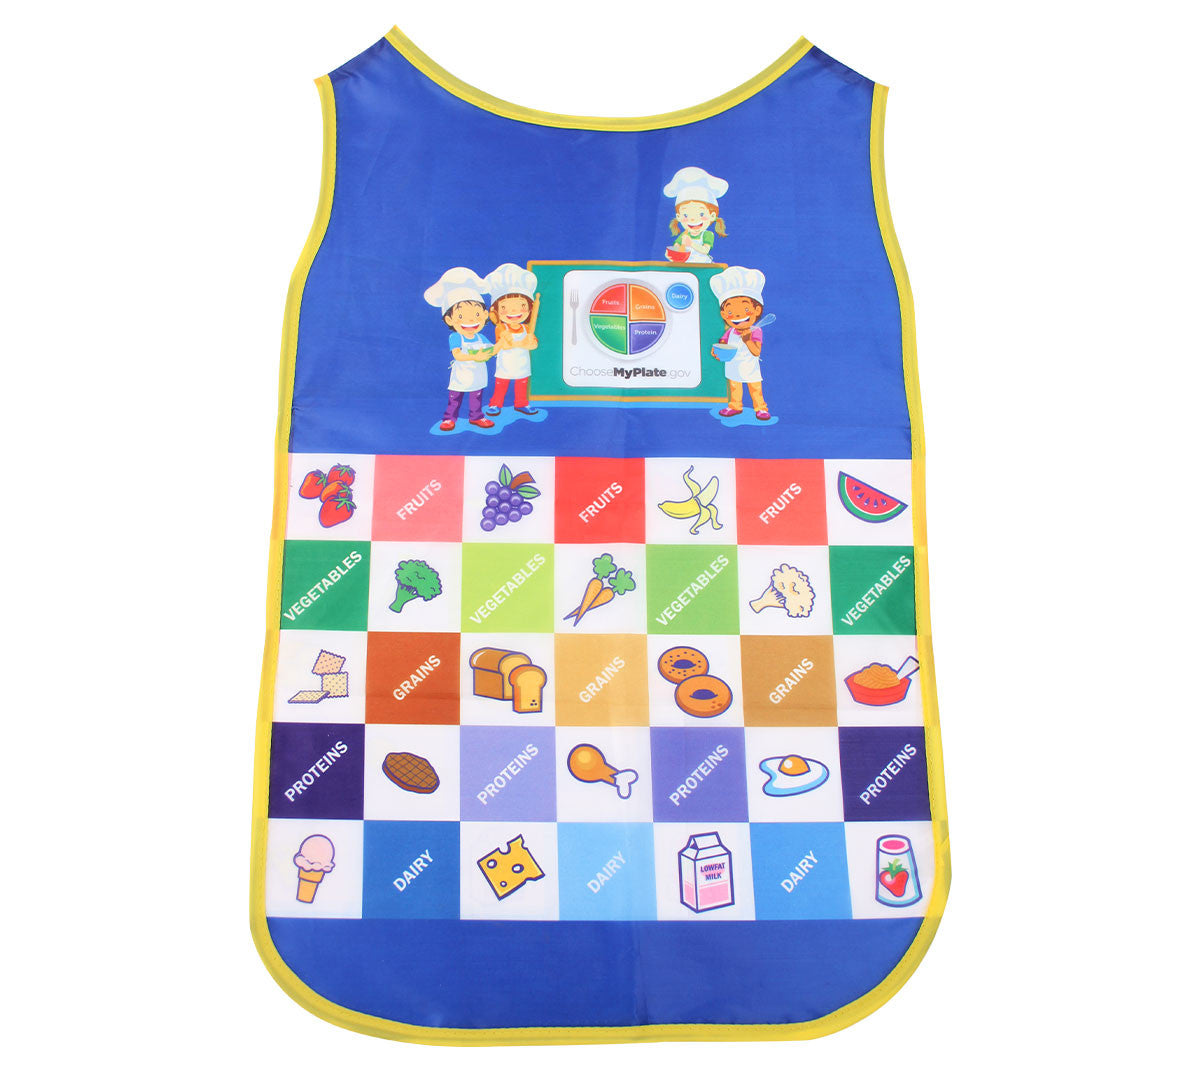 Fresh Baby's Kid's MyPlate Apron is perfect for little kitchen helpers. Young children enjoy helping prepare meals and their participation can result in better eating habits at the dinner table.